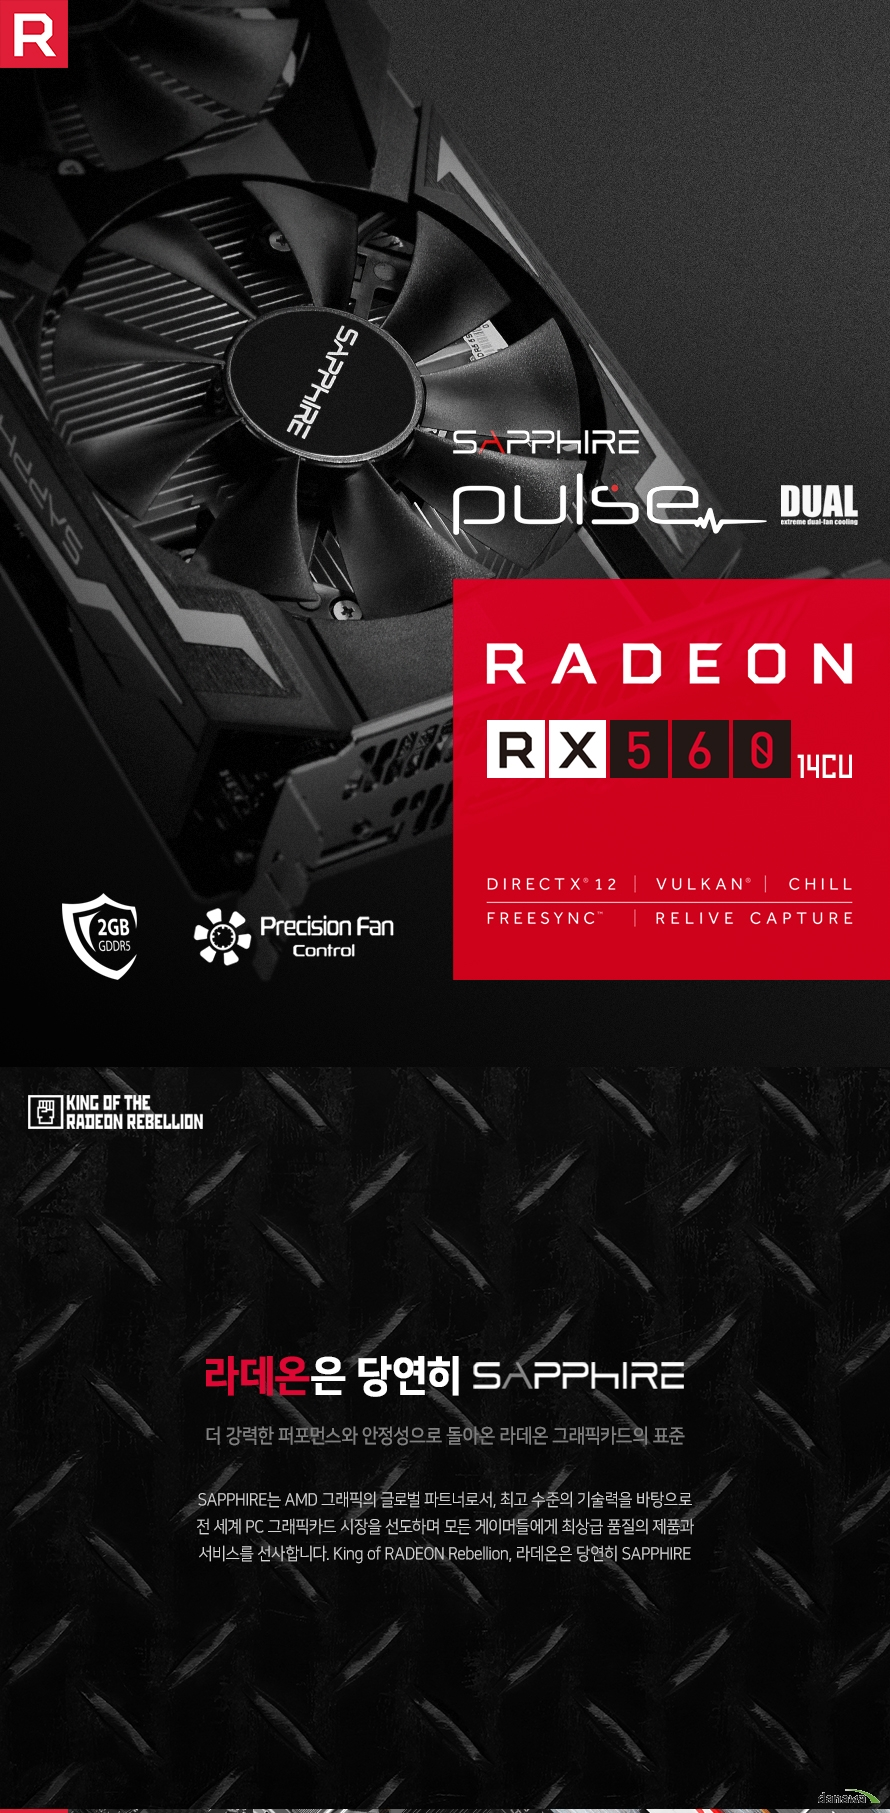 SAPPHIRE 라데온 RX 560 14CU PULSE Advantage Edition D5 2GB DUAL